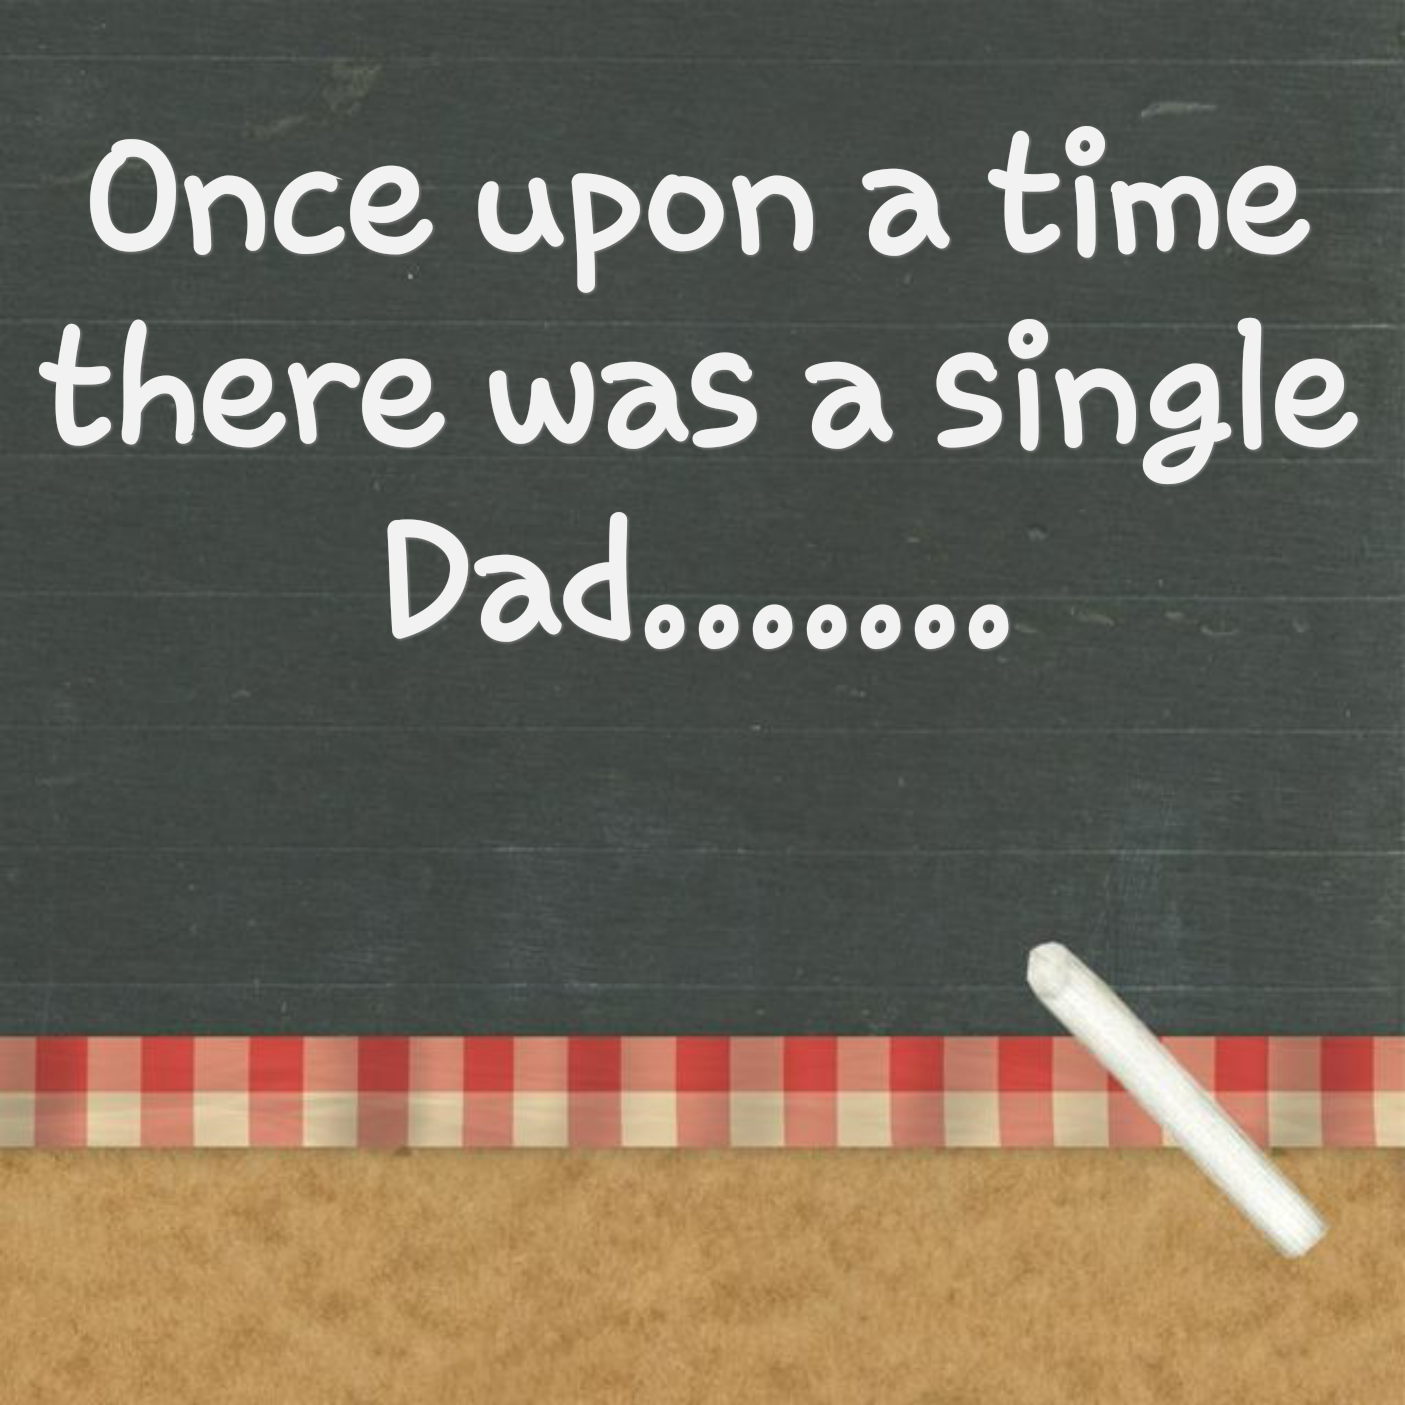 Once upon a time there was a single Dad…….